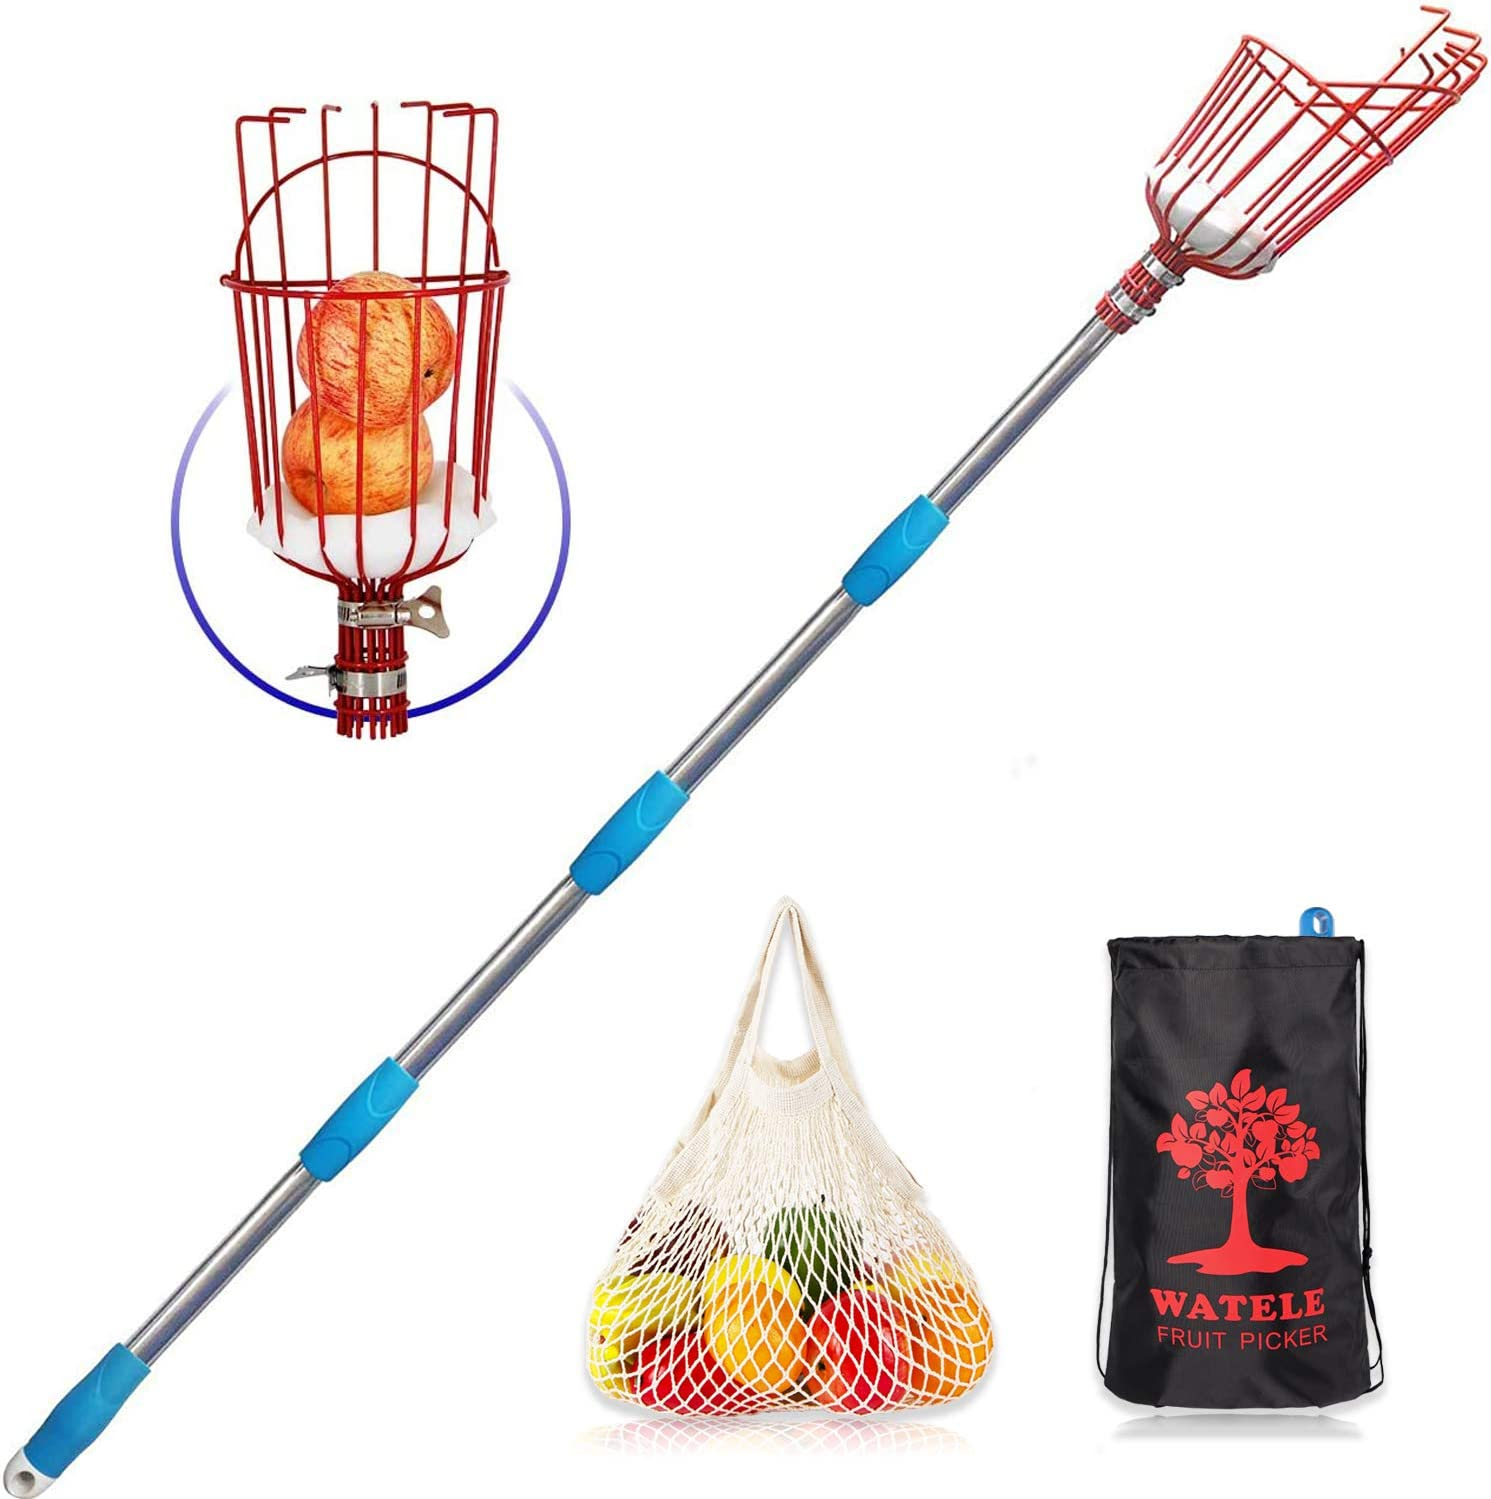 WATELE Fruit Picker Pole Tool(8FT)-Include Fruit Picker Basket,Tool Storage Bags and Fruit Bags,for Pick Apples,Oranges and Fruit Trees